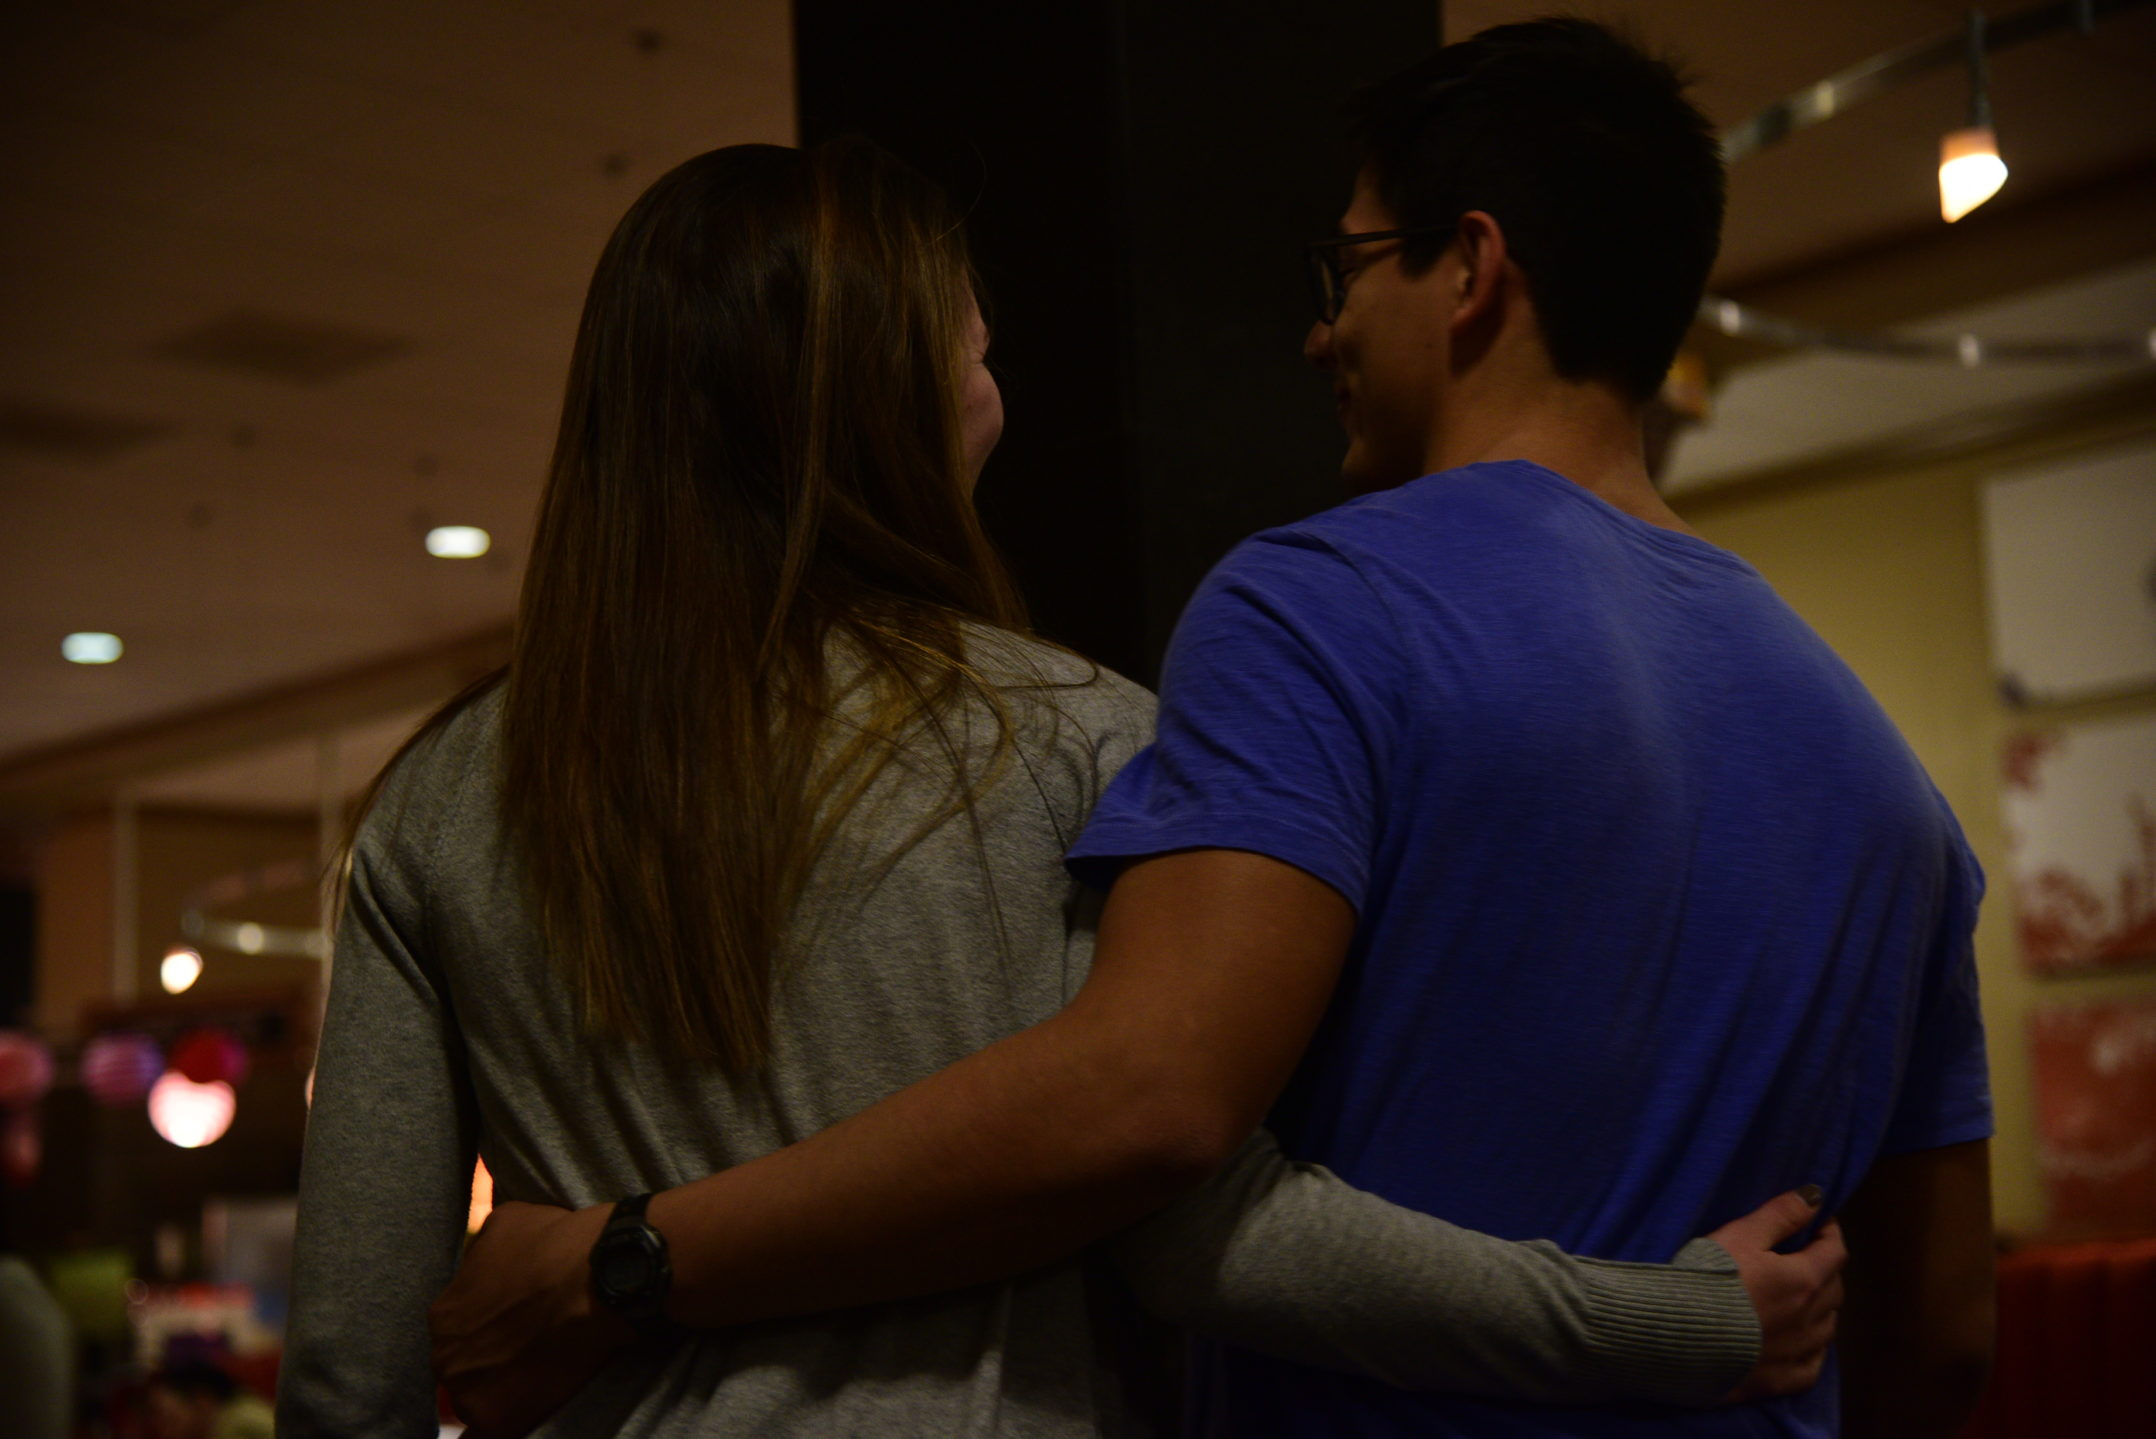 Kelli Barber, '18, and Carlos Chavez, '18, hold each other as they walk through Lower Cort dining hall. Lower Cort held a Valentine's Day theme dinner. (Ashley Omoma/B&W Staff)